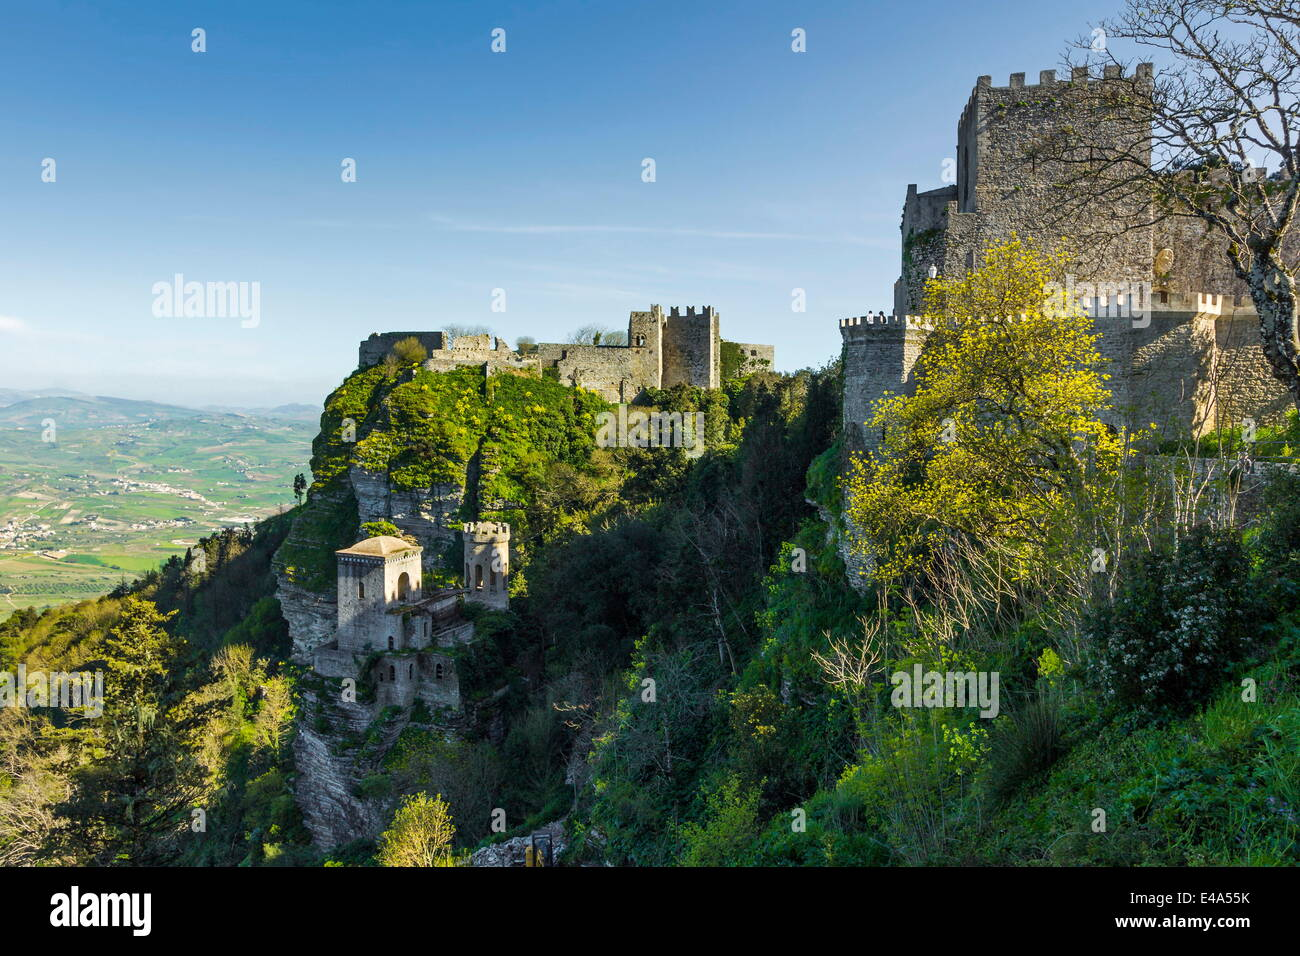 Saracen Arab era Pepoli Castle, now a hotel, in historic town high above Trapani at 750m, Erice, Trapani, Sicily, - Stock Image